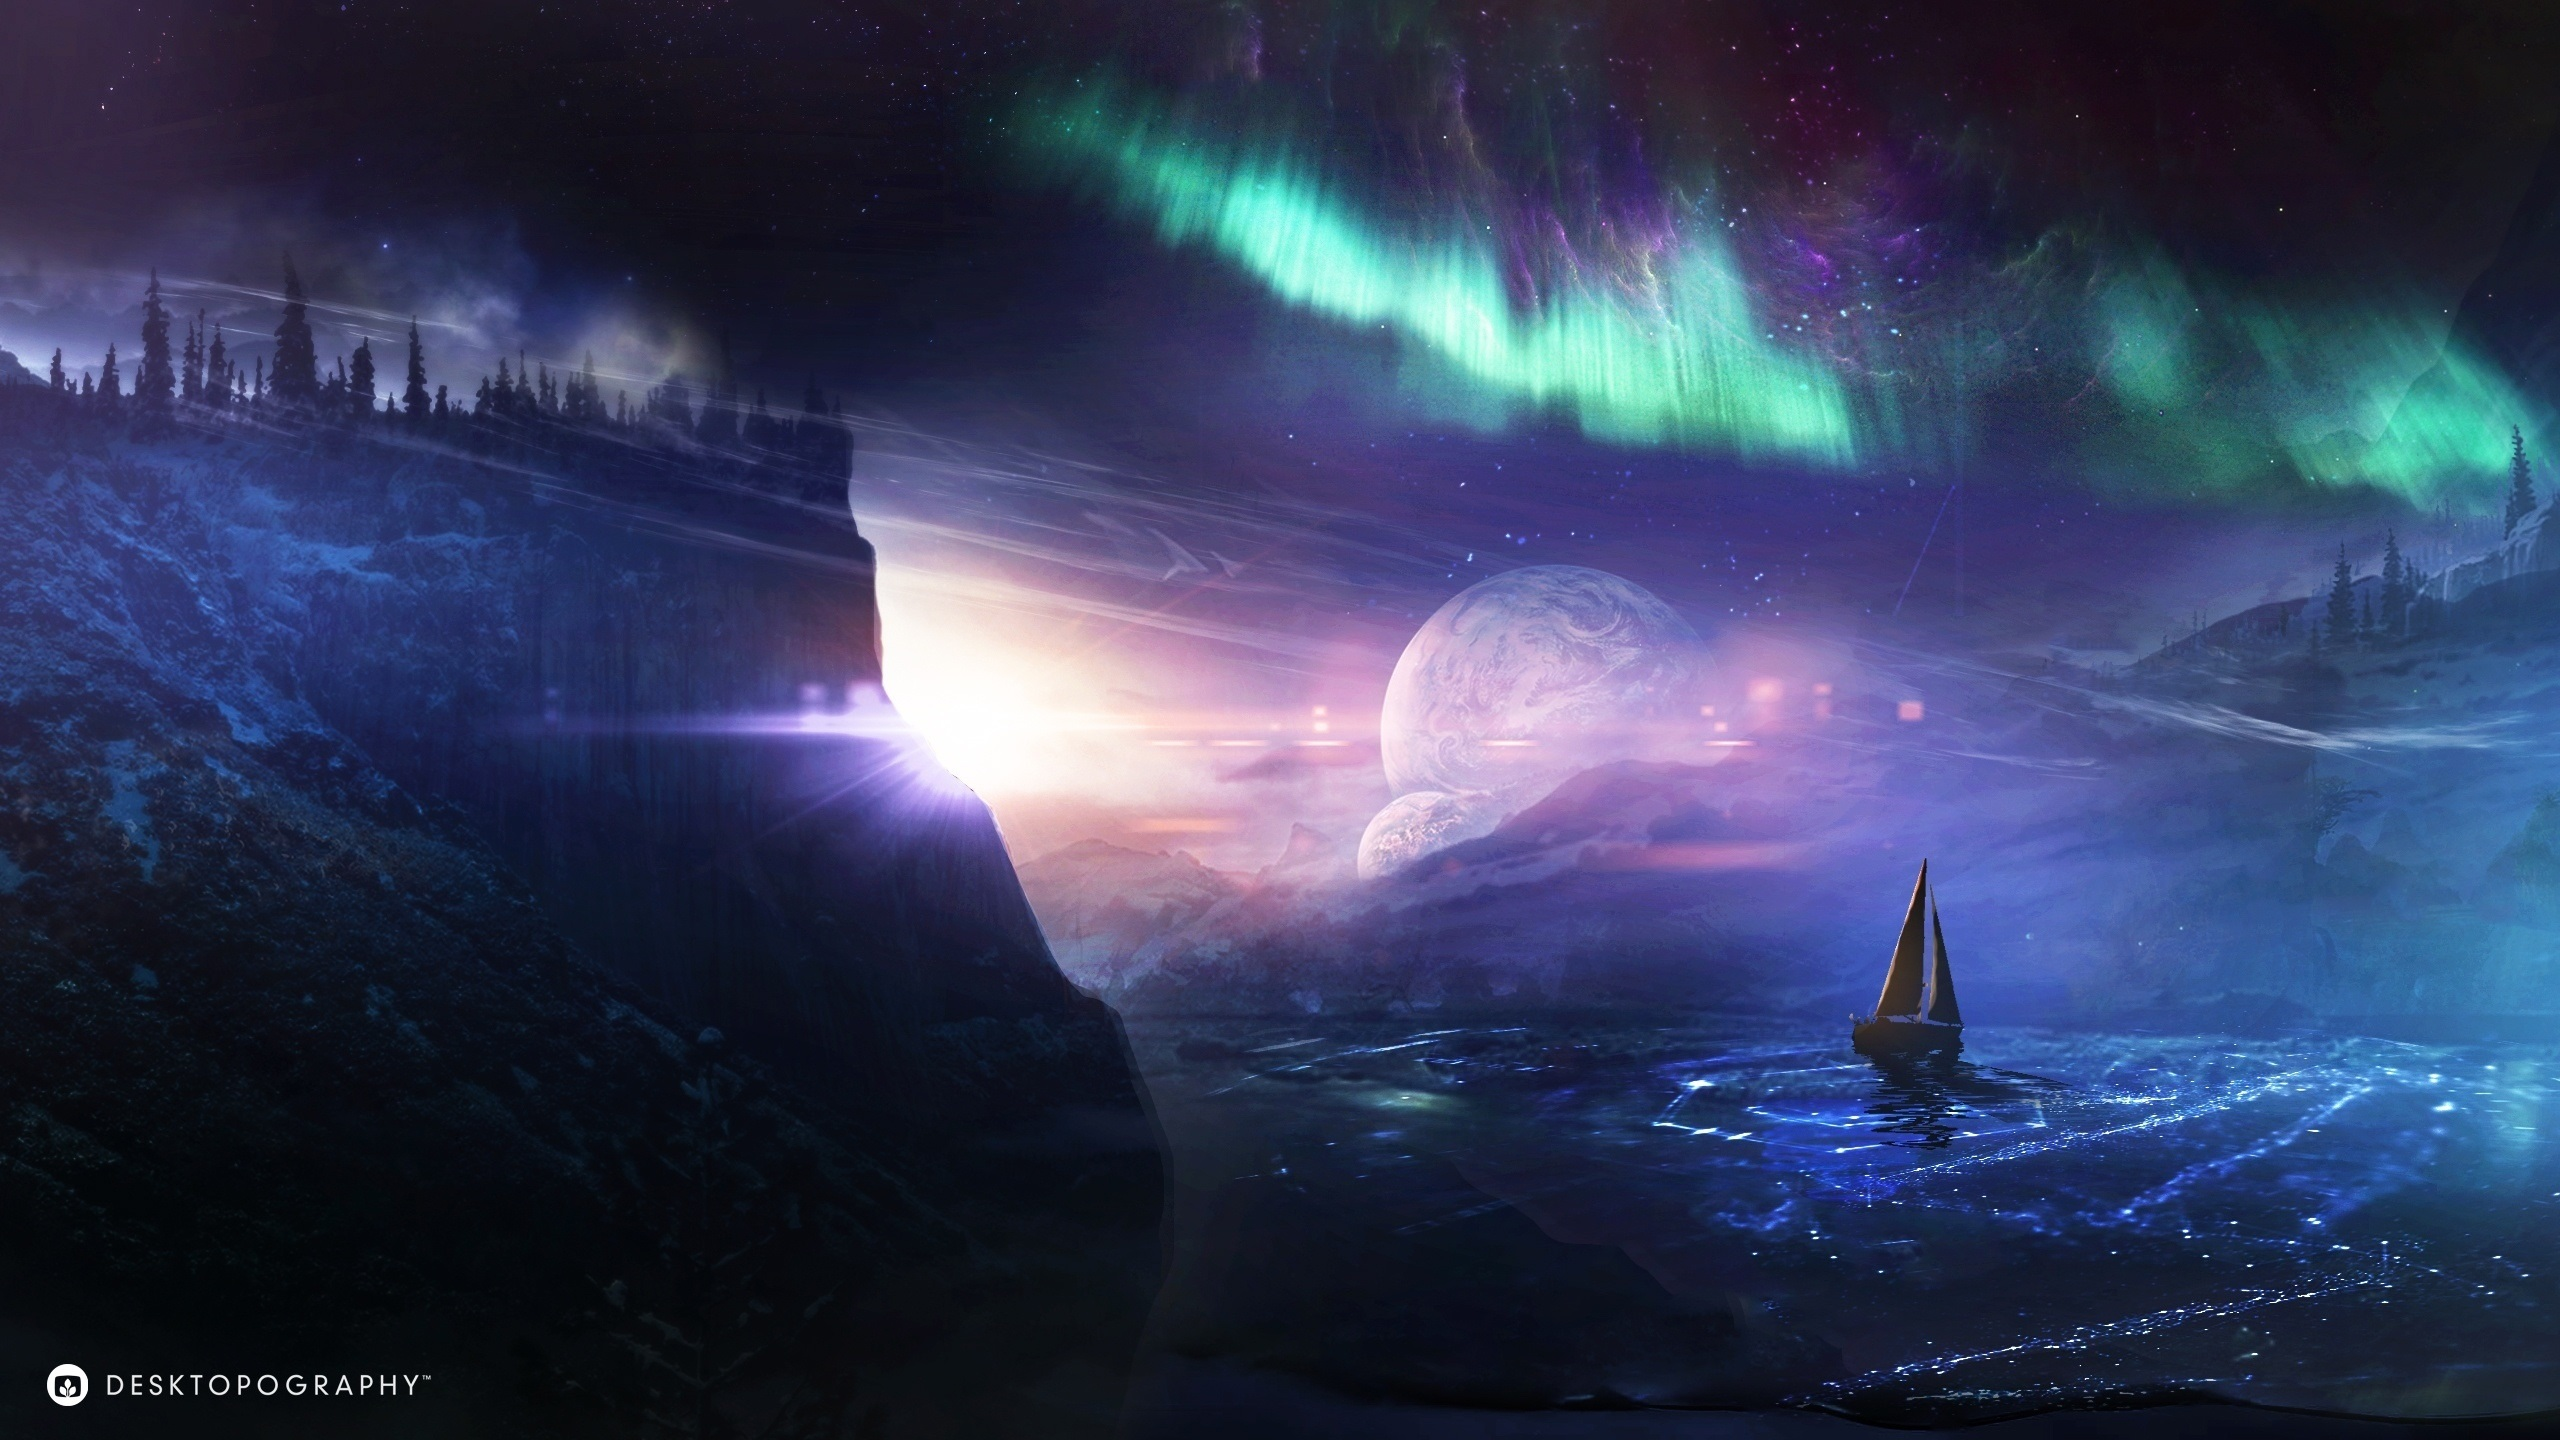 Desktopography Creative Pictures Planet Ship Northern Lights Water_2560x1440 on Planet Wallpaper Hd 1280x1024